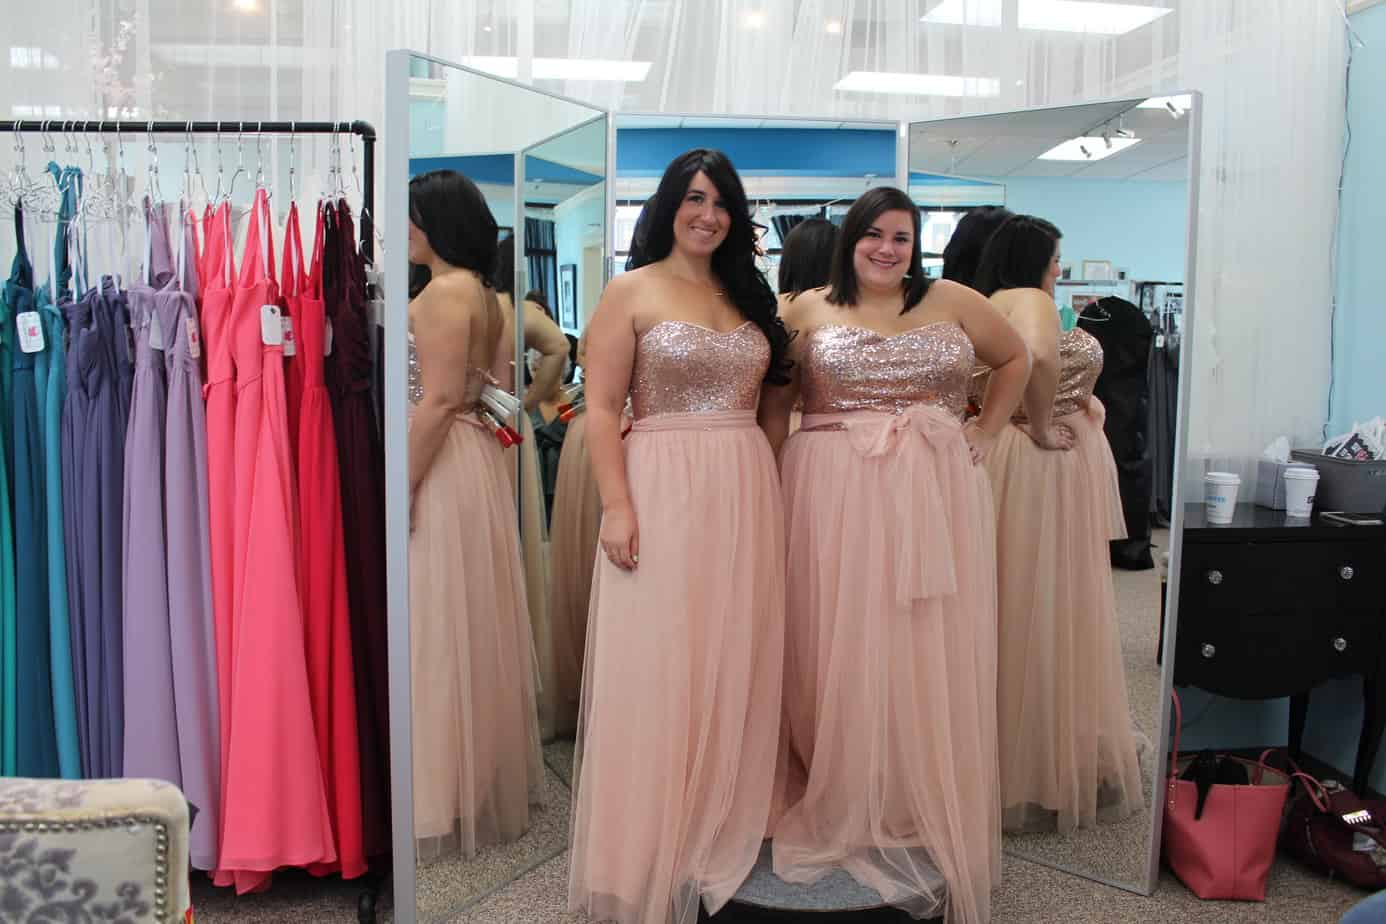 Shopping for Plus Size Bridesmaid Dresses - Ready To Stare